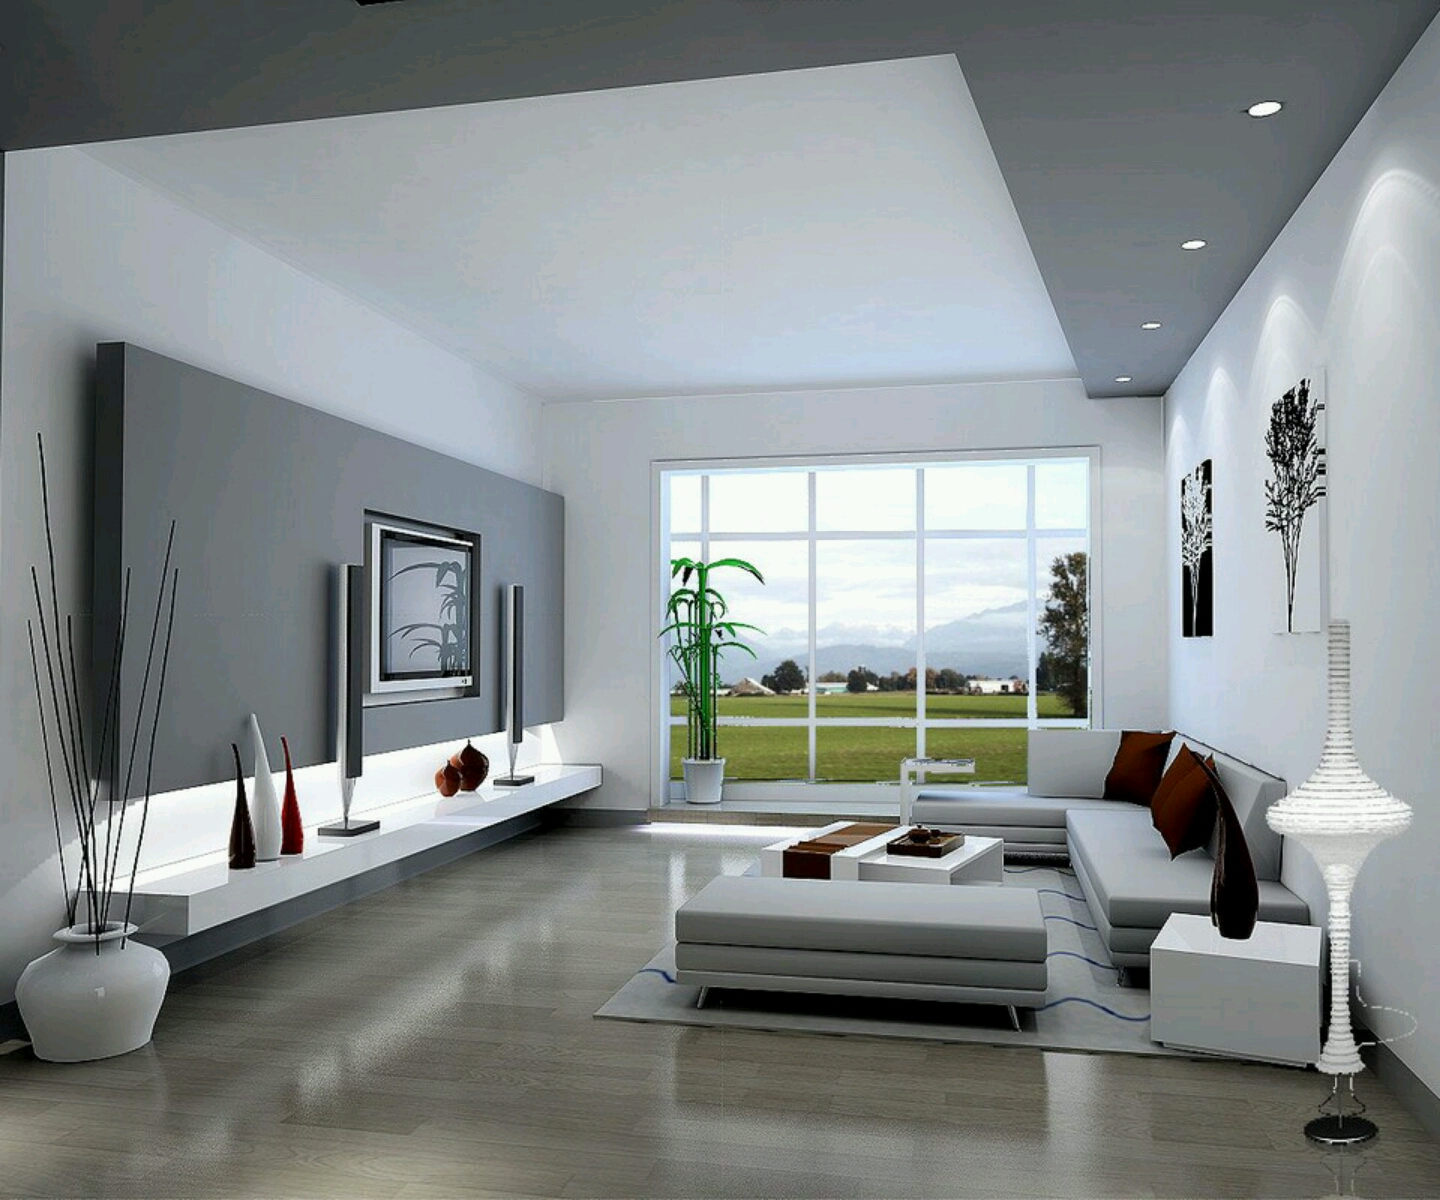 New home designs latest modern living rooms interior for Interior designs living rooms